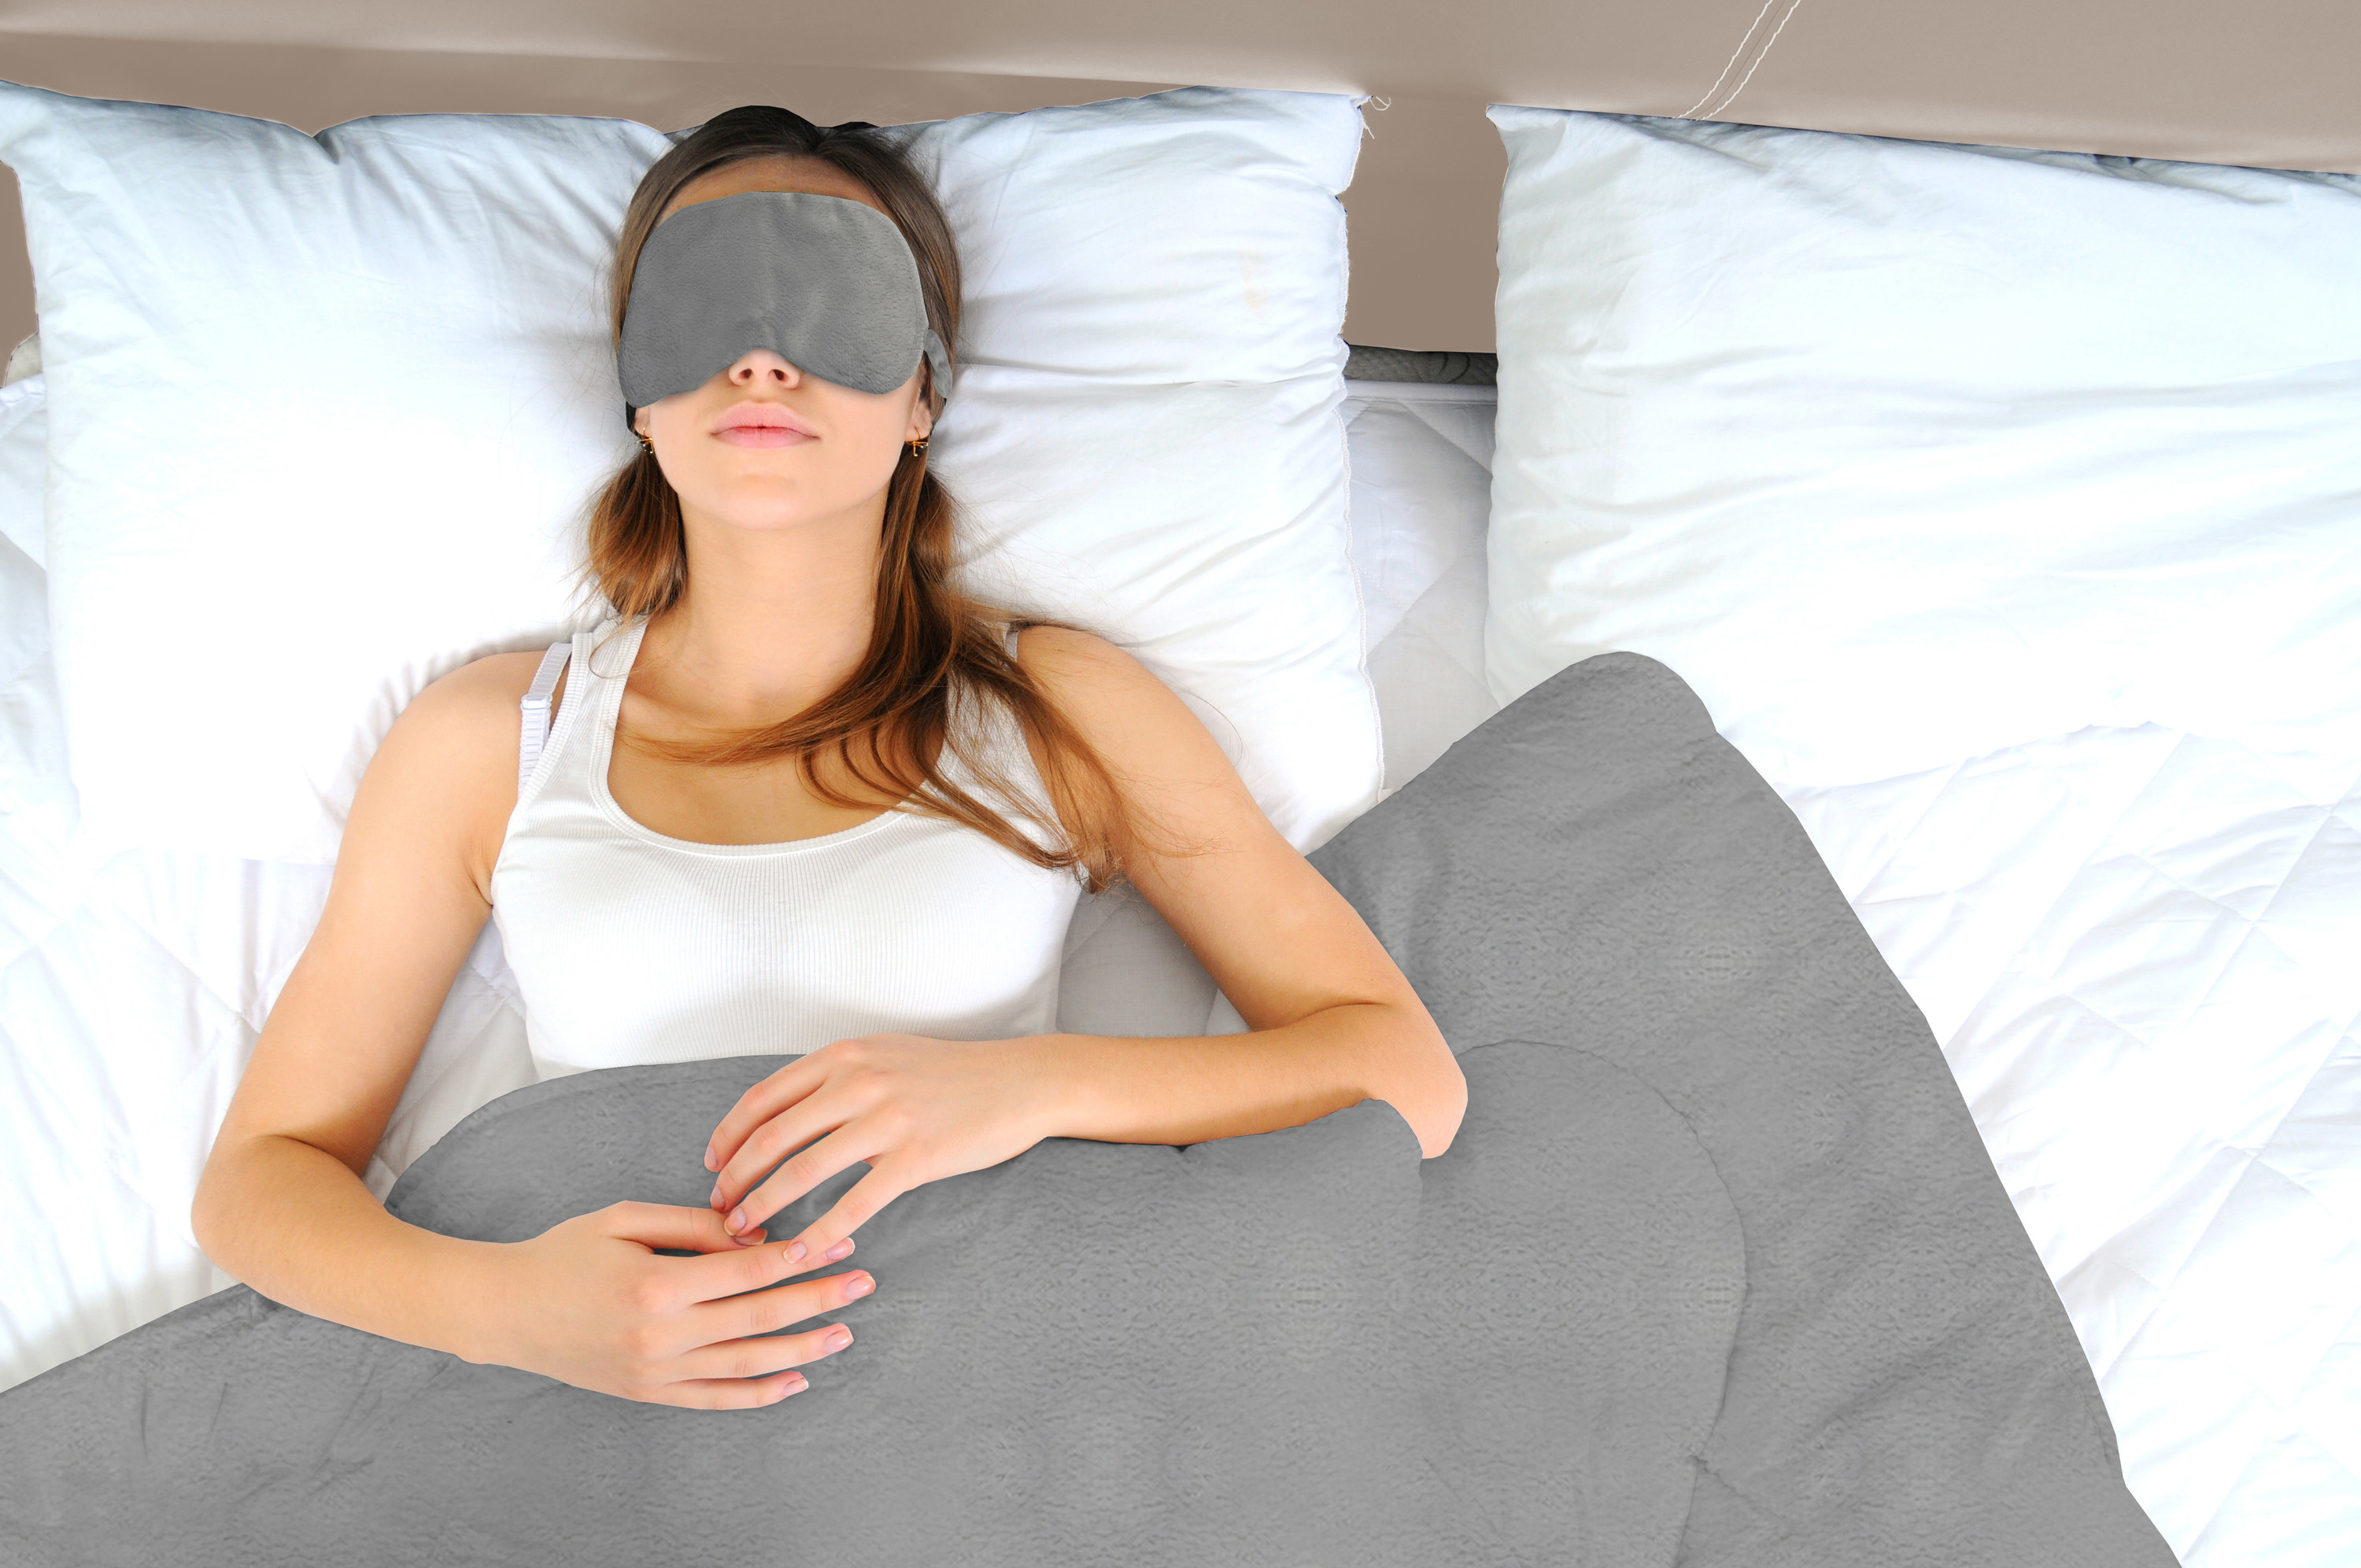 Model uses eye mask and weighted blanket with duvet cover in bed